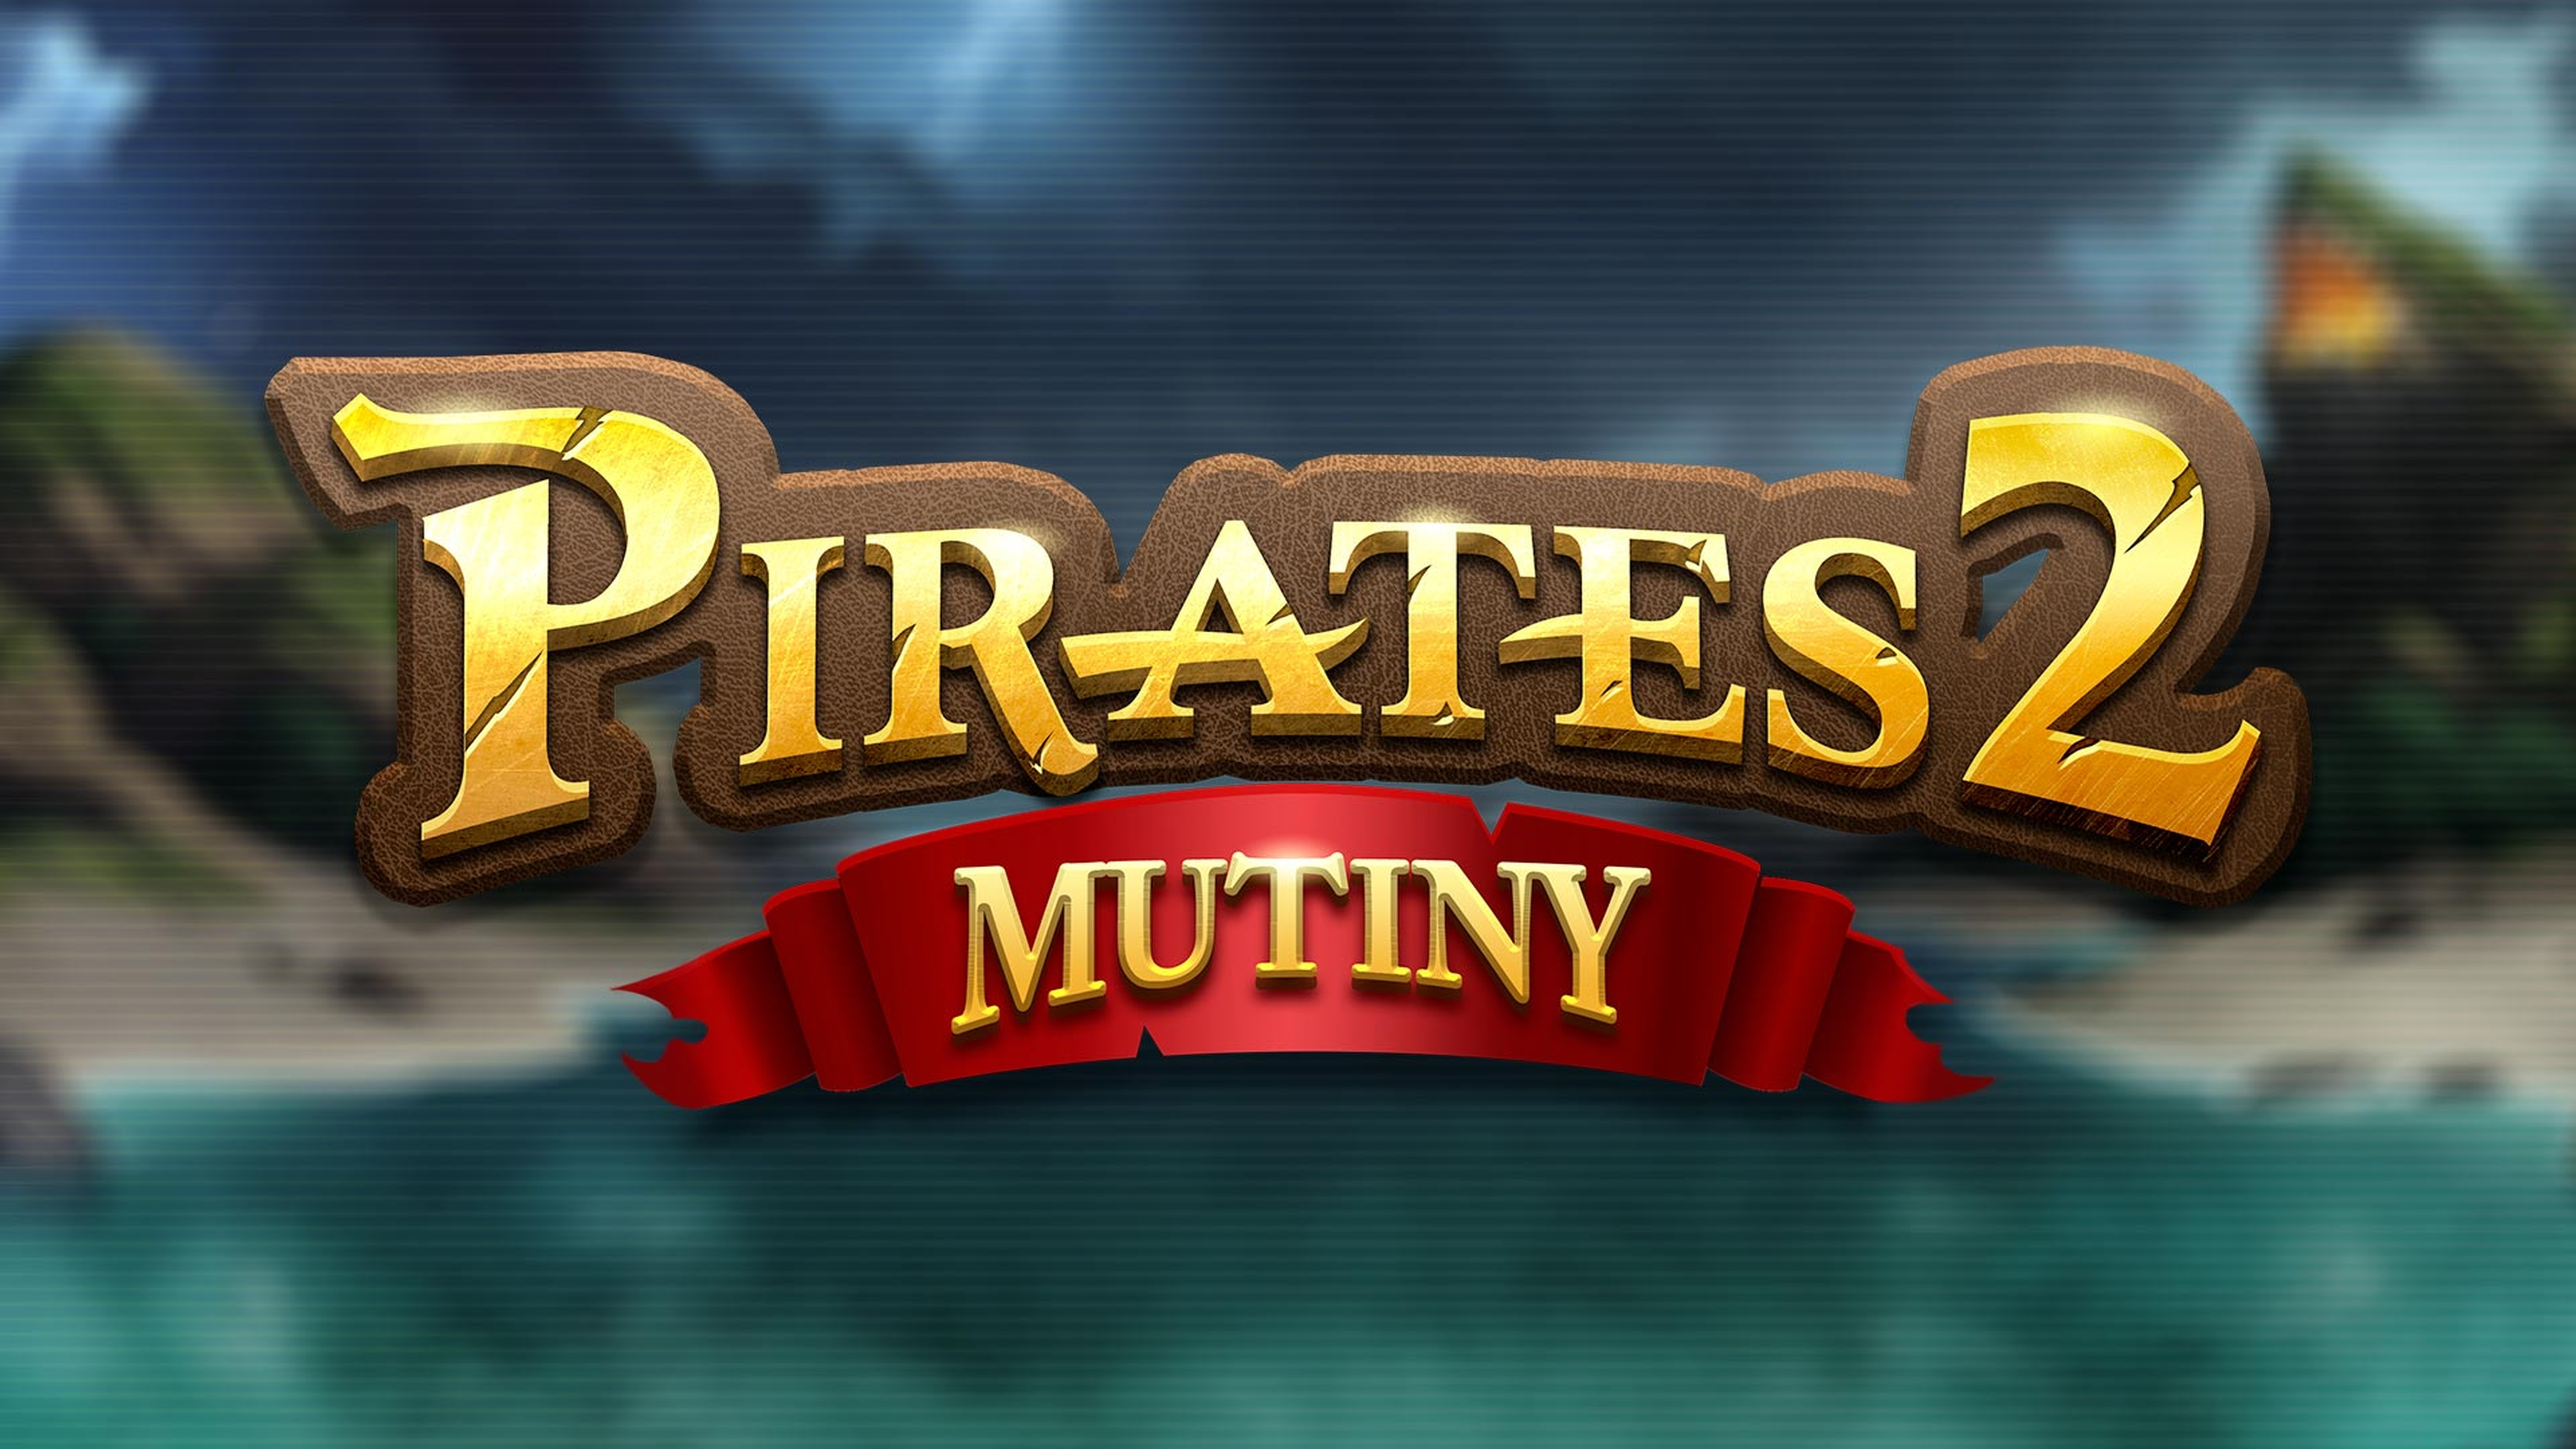 The Pirates 2: Mutiny Online Slot Demo Game by Yggdrasil